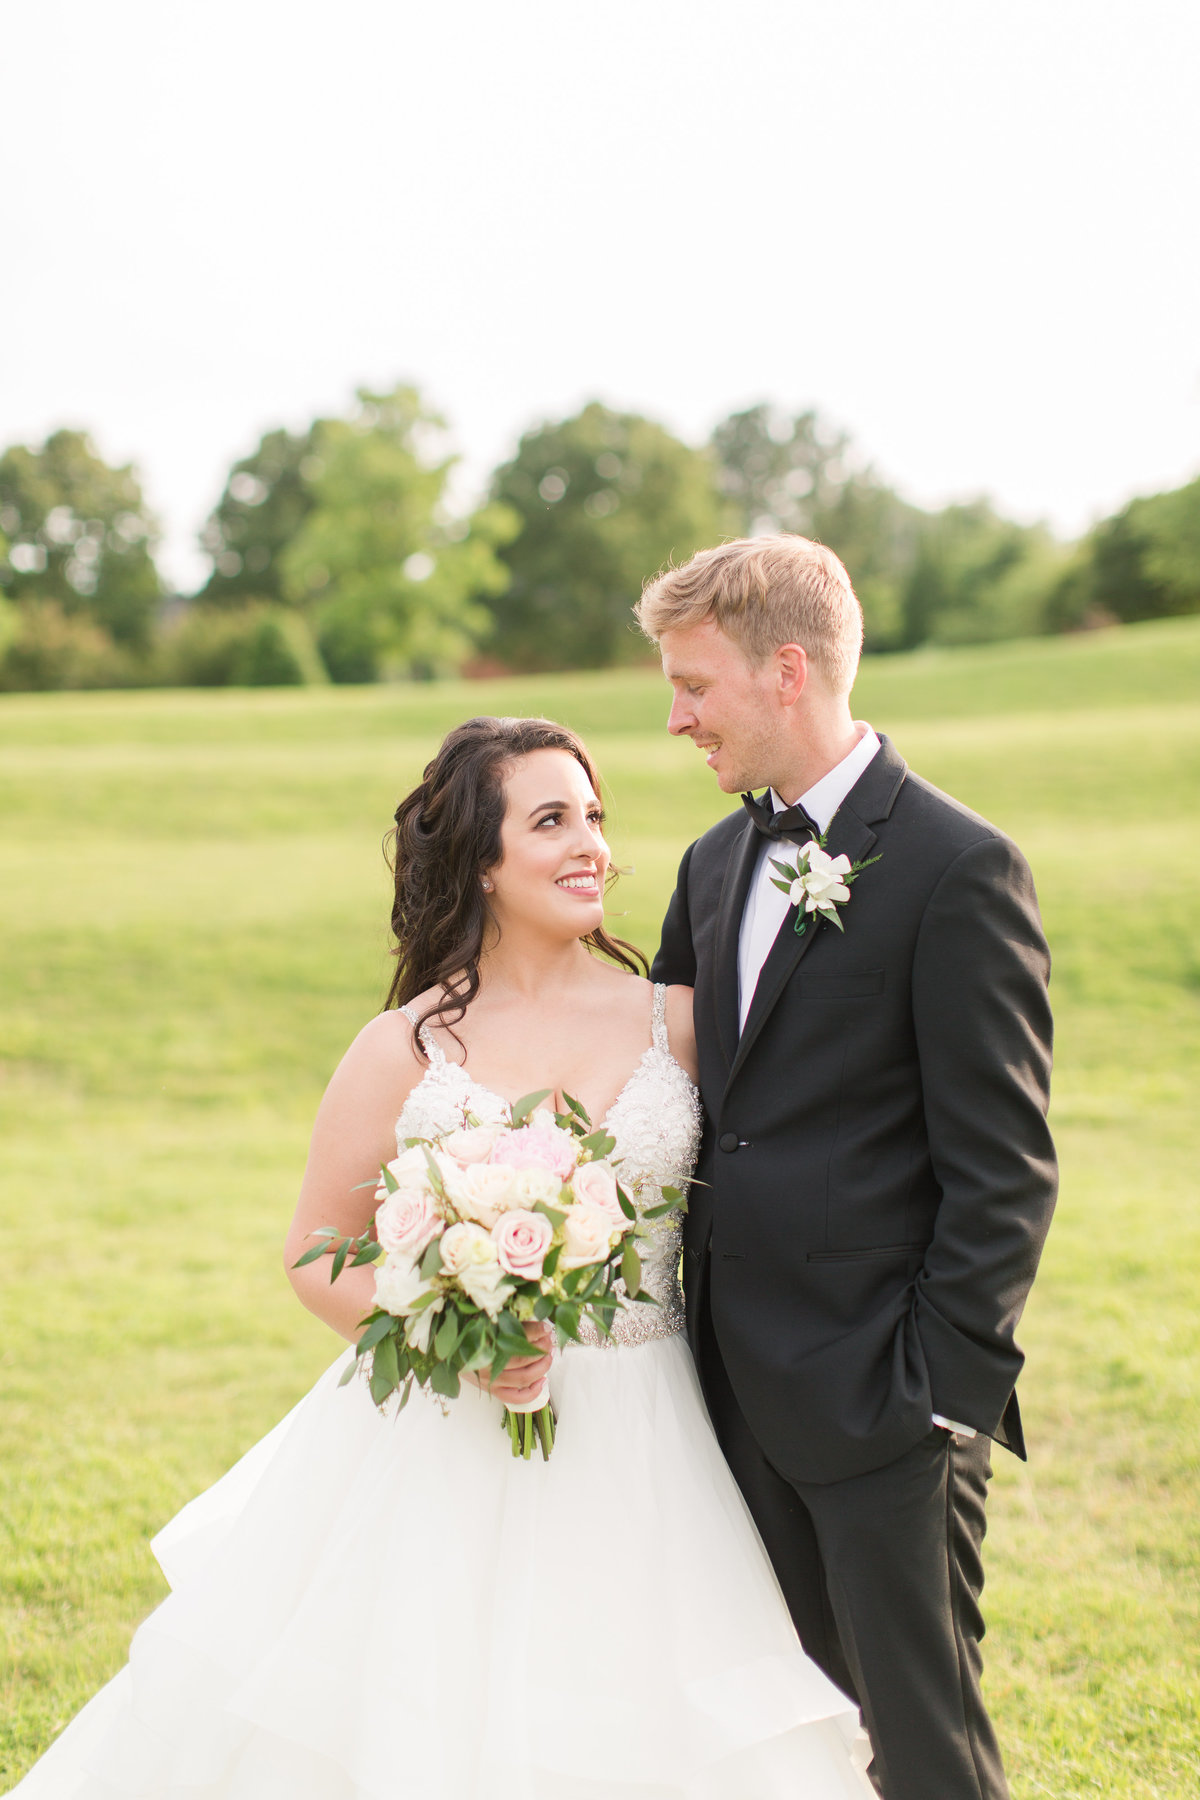 Bride and groom smiling together at Lewis Ginter Botanical Gardens wedding